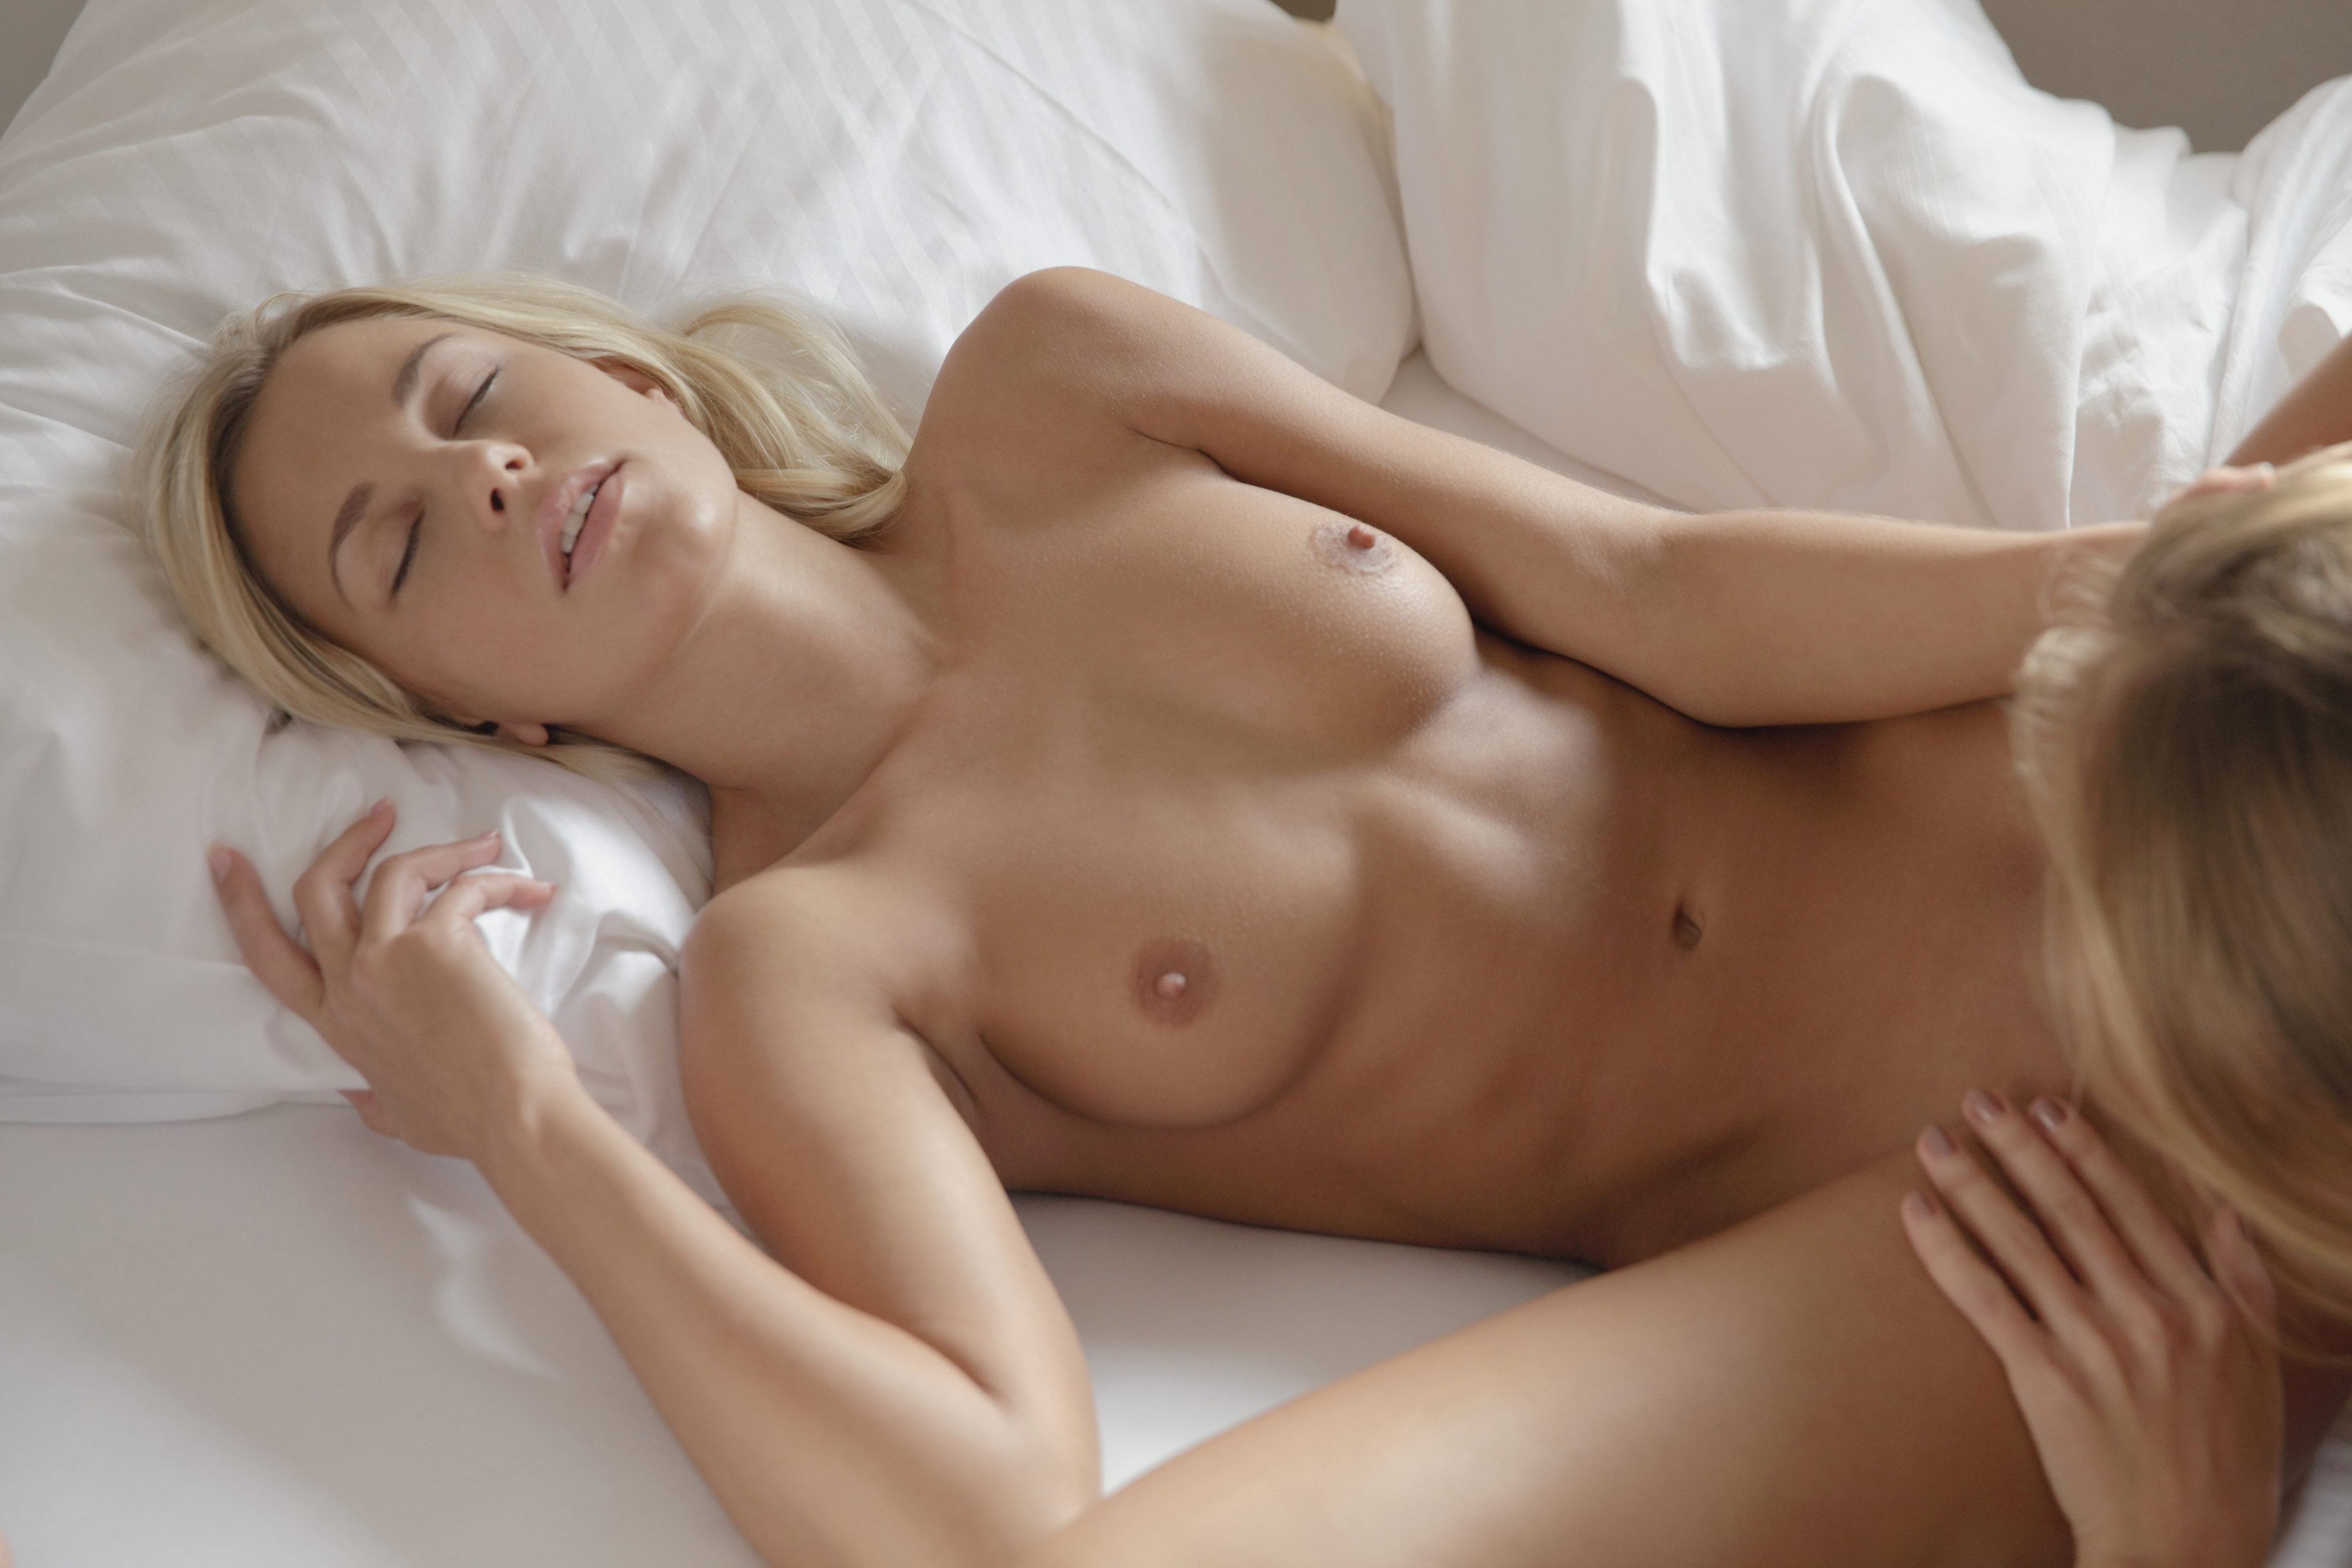 Big titted milf dianna doll munches on a stiff dick - 2 part 5